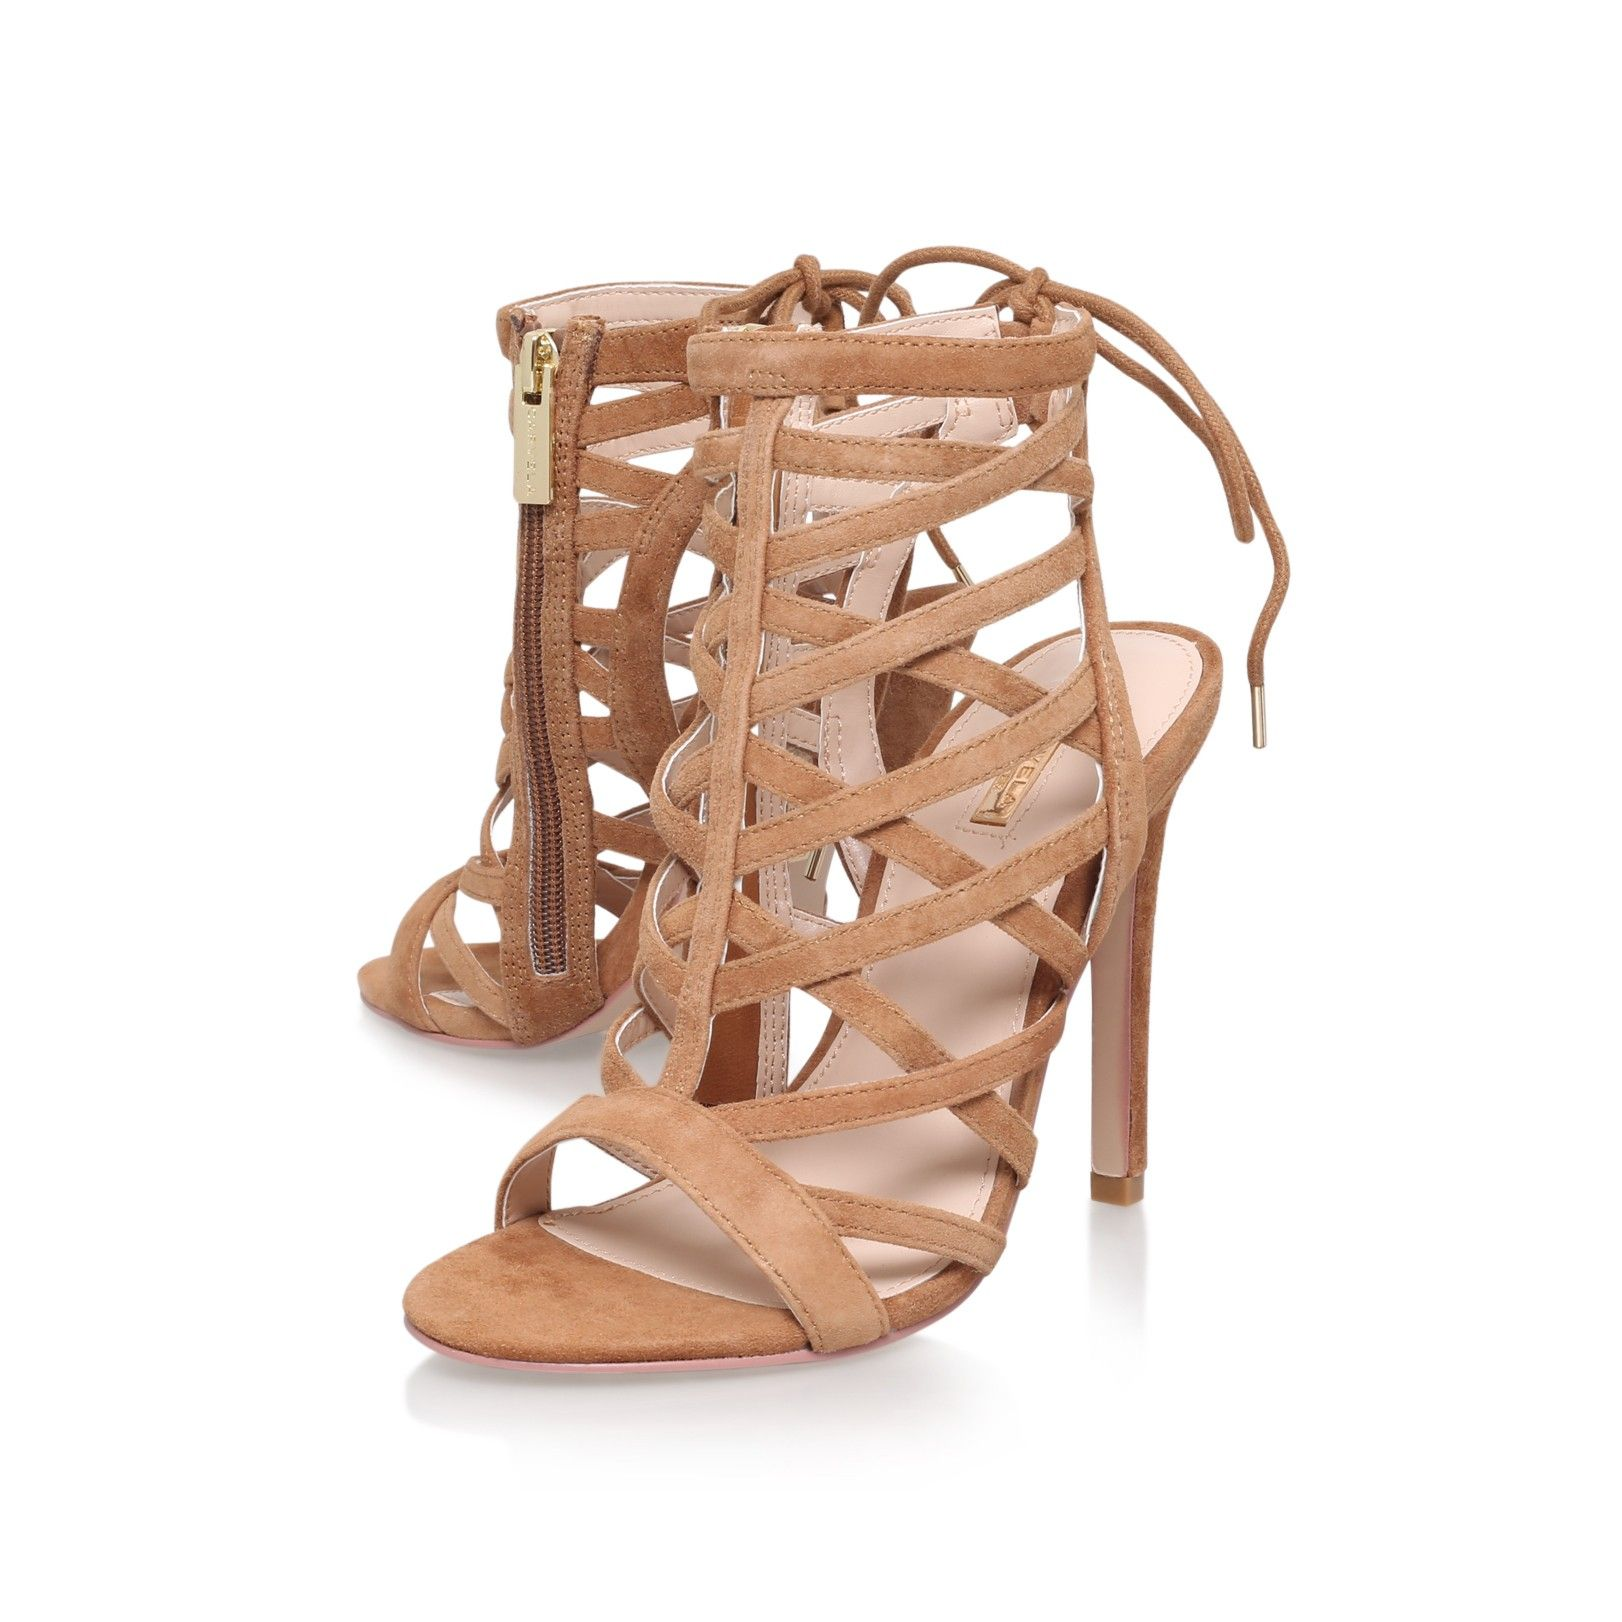 gracie tan high heel sandals from Carvela Kurt Geiger